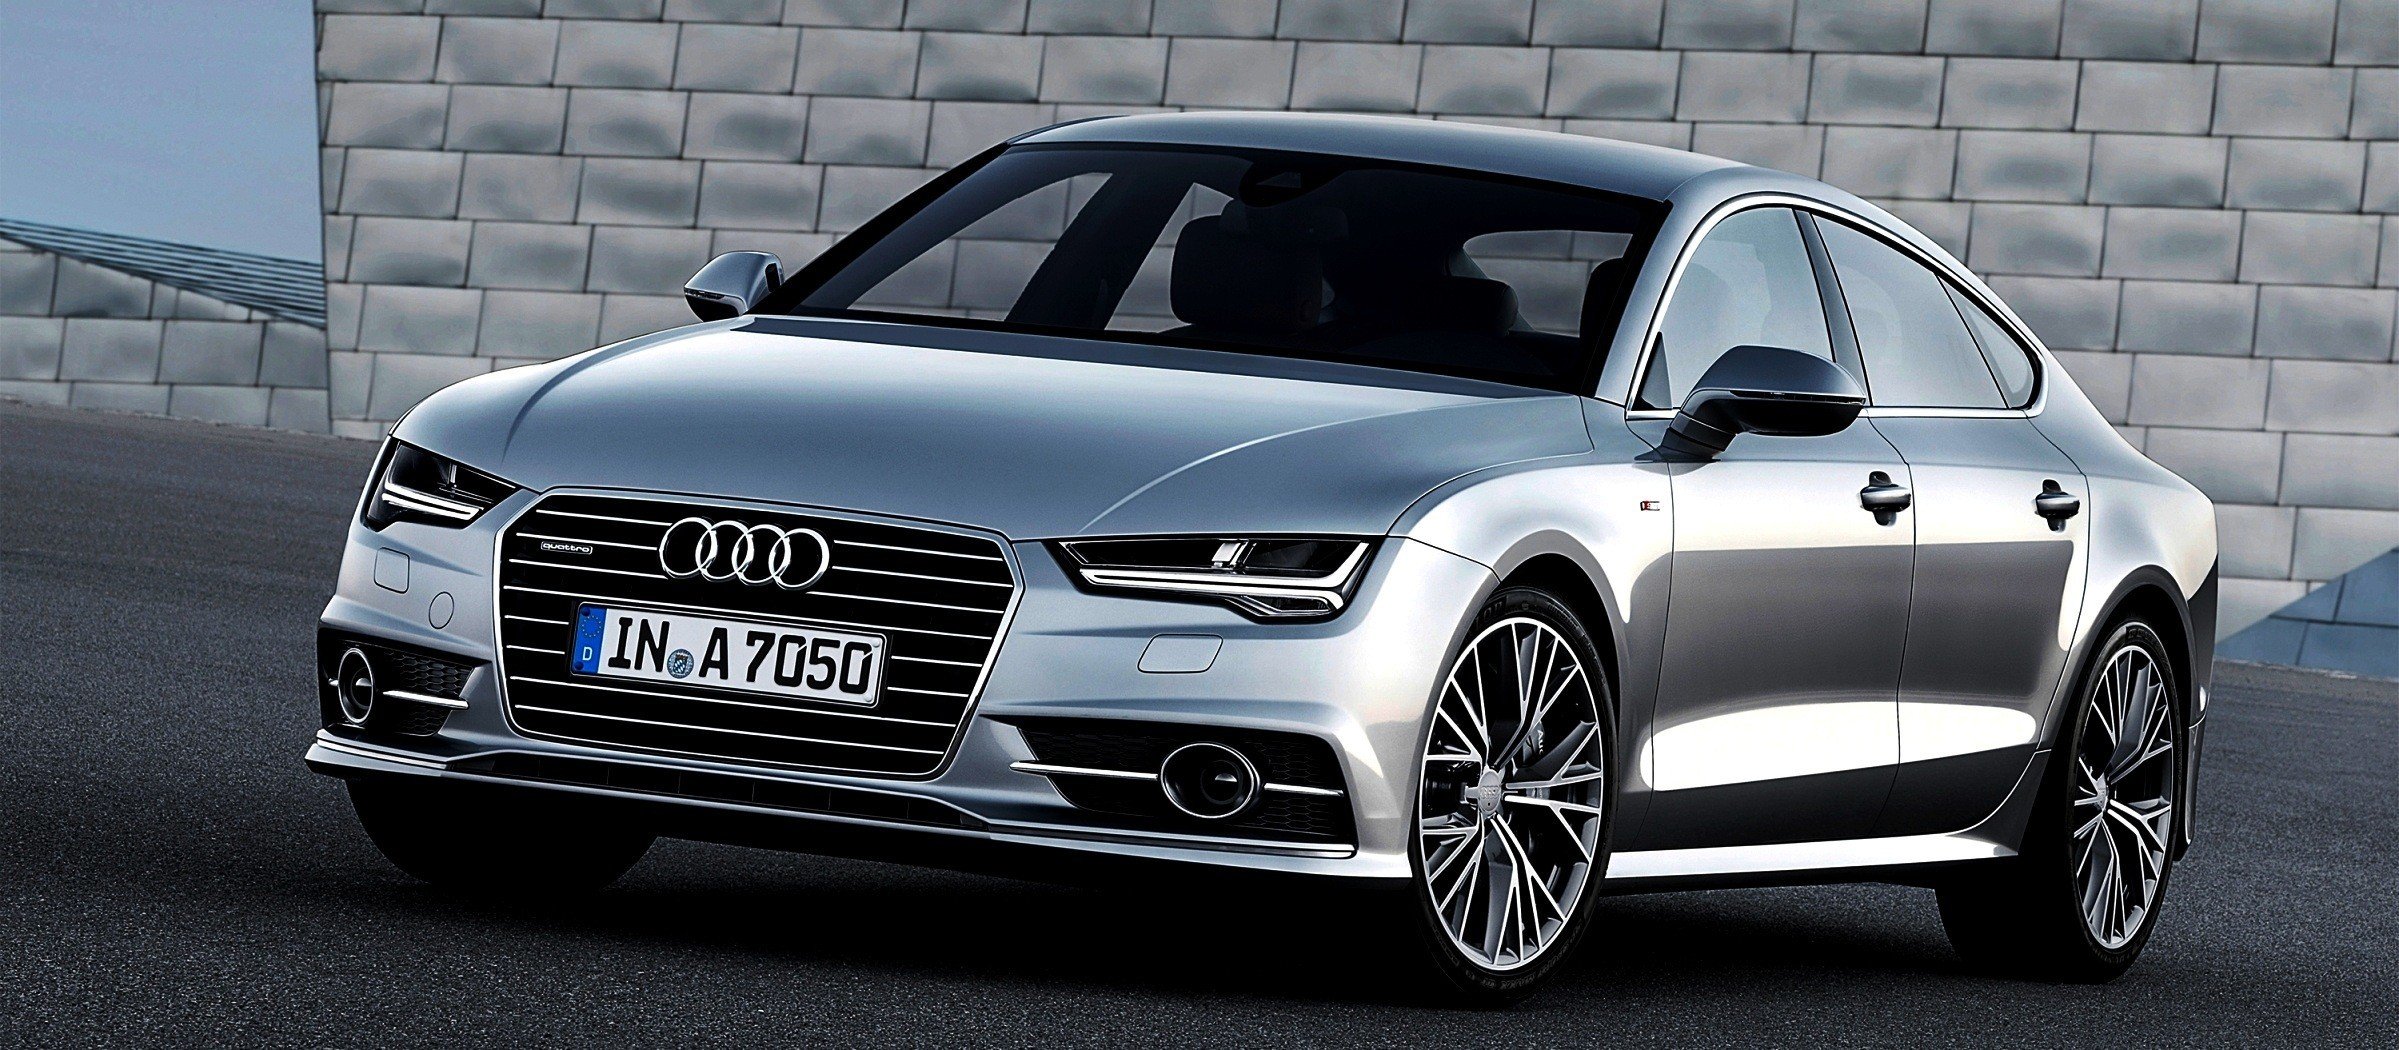 2015 Audi A7 and S7 Refresh Brings New LEDs, Detail Tweaks and New Wheels